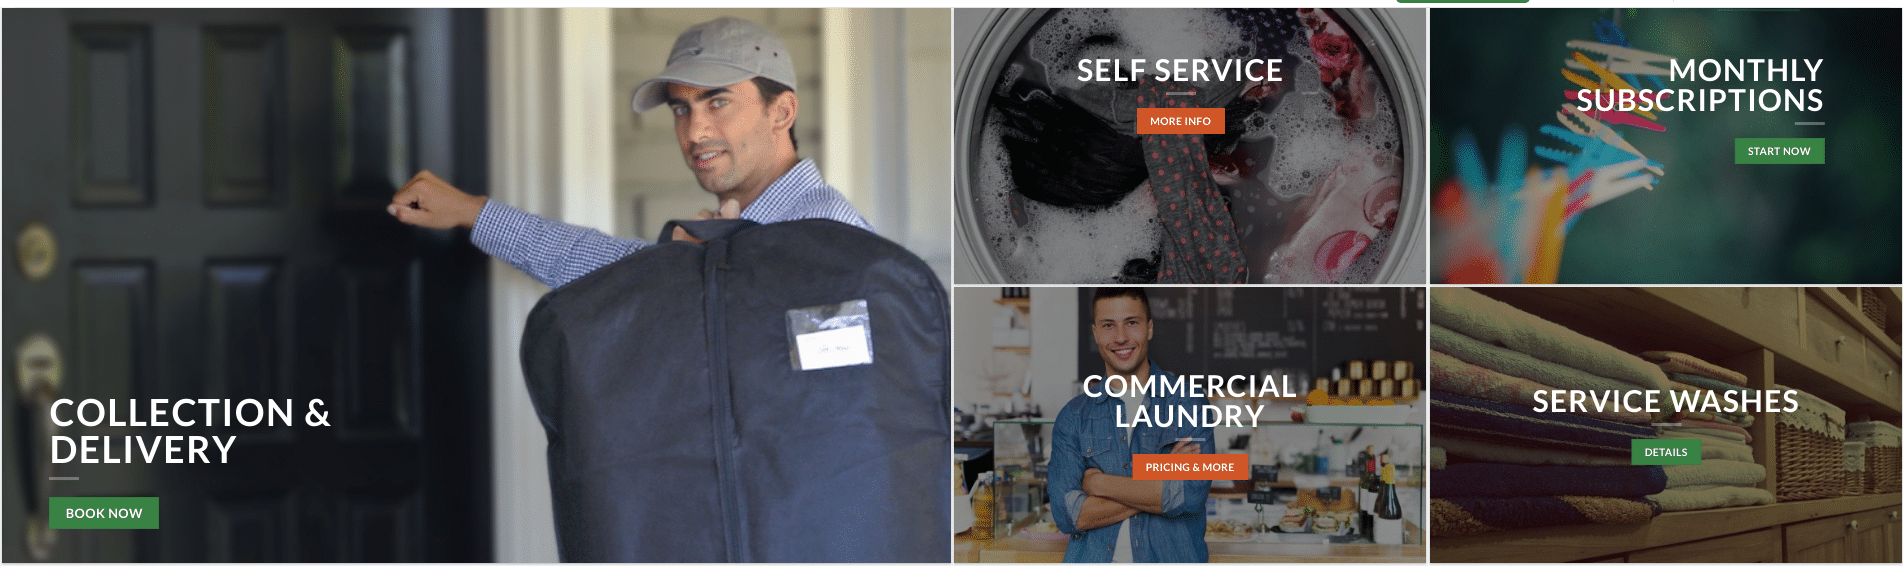 The Clean Bean Launderette & Dry Cleaners